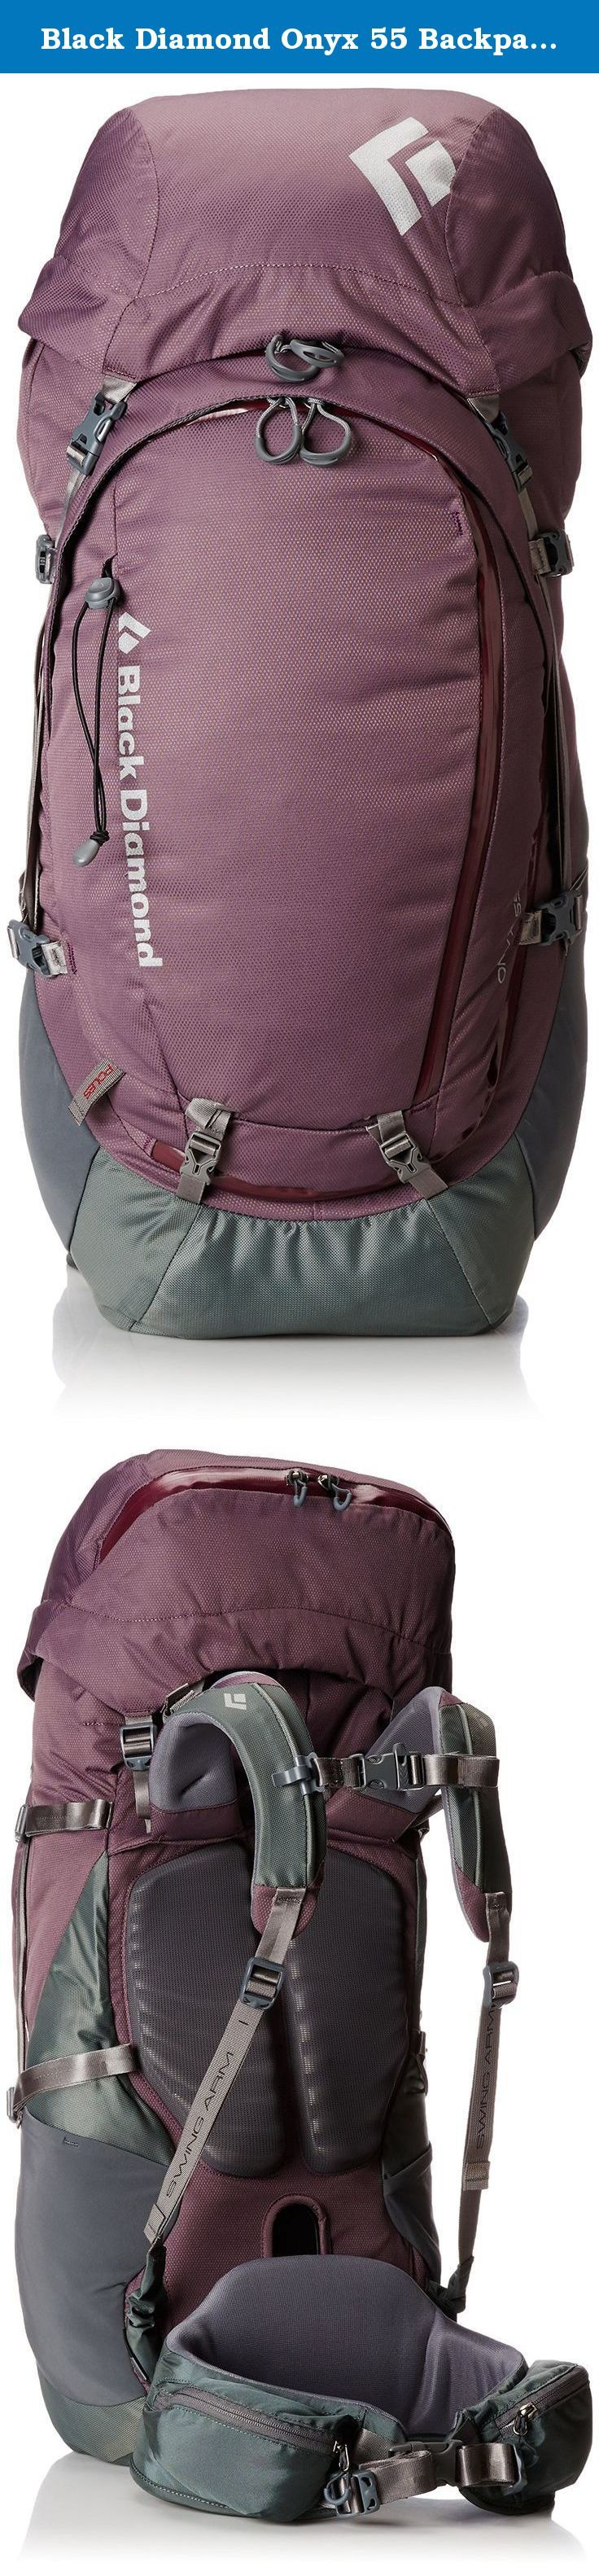 Black Diamond Onyx 55 Backpack, Purple Sage, Small. A durable, full-featured women's-specific pack that maximizes comfort and stability during long days on the trail, the Black Diamond Women's Onyx 55 Backpack is ideal for weekend trips from Yosemite to the Ice Age Trail. Our ergoACTIV XP suspension system uses a custom, 3D pivoting hip belt, women's-specific fit and SwingArm shoulder straps for increased stability, unparalleled freedom of movement and dynamic load transfer. The pack's…